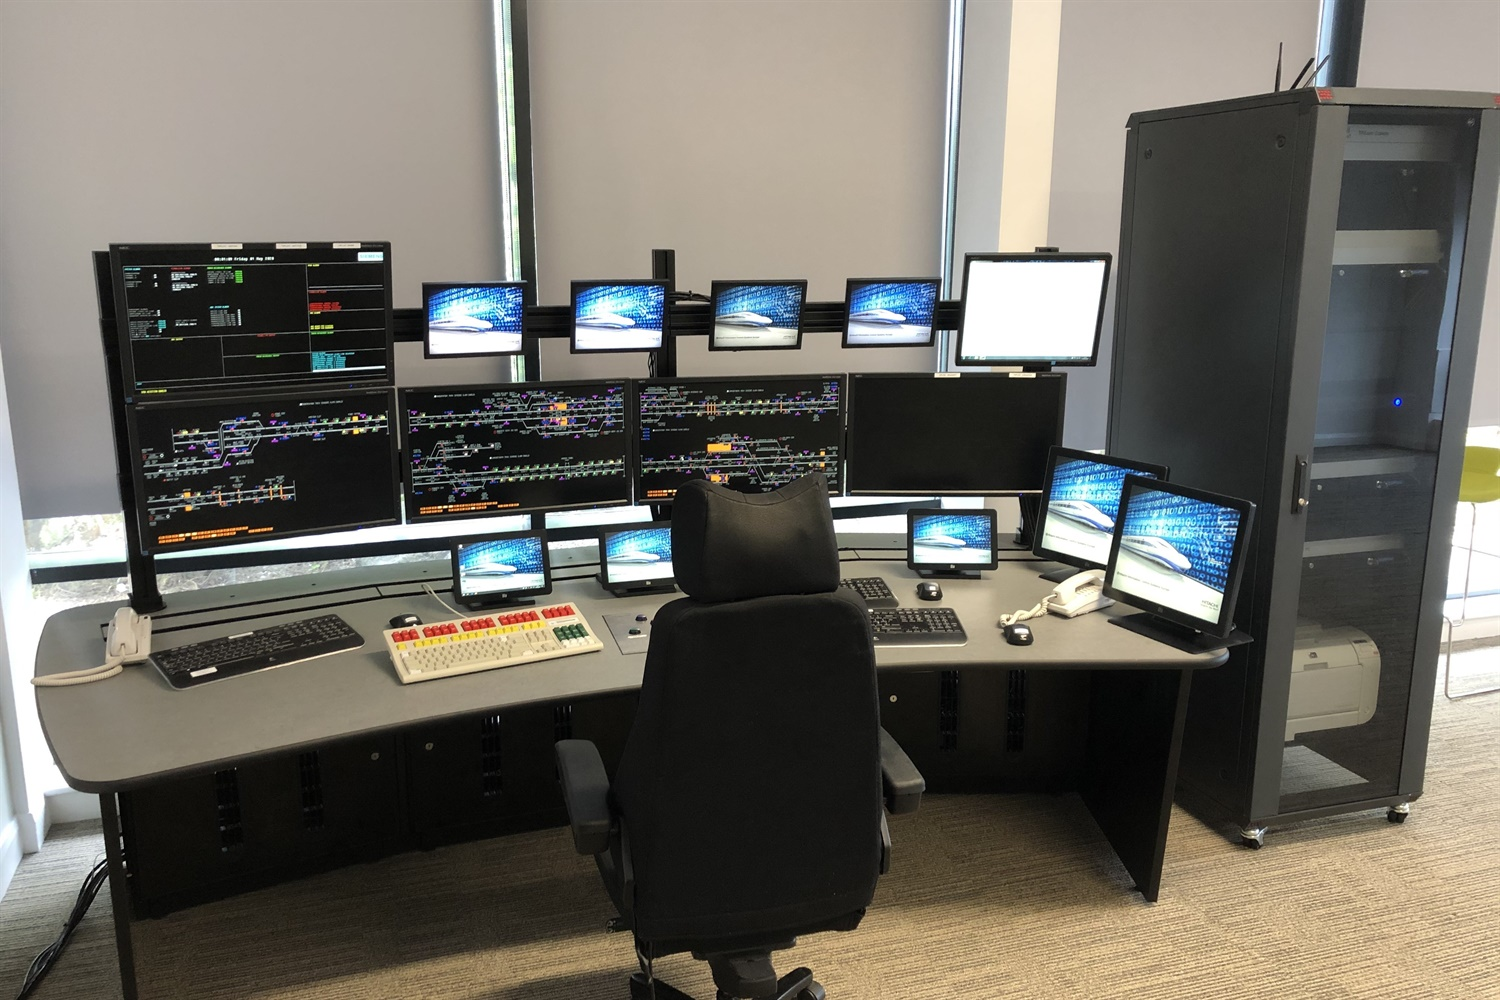 New West Midlands railway signallers training facility